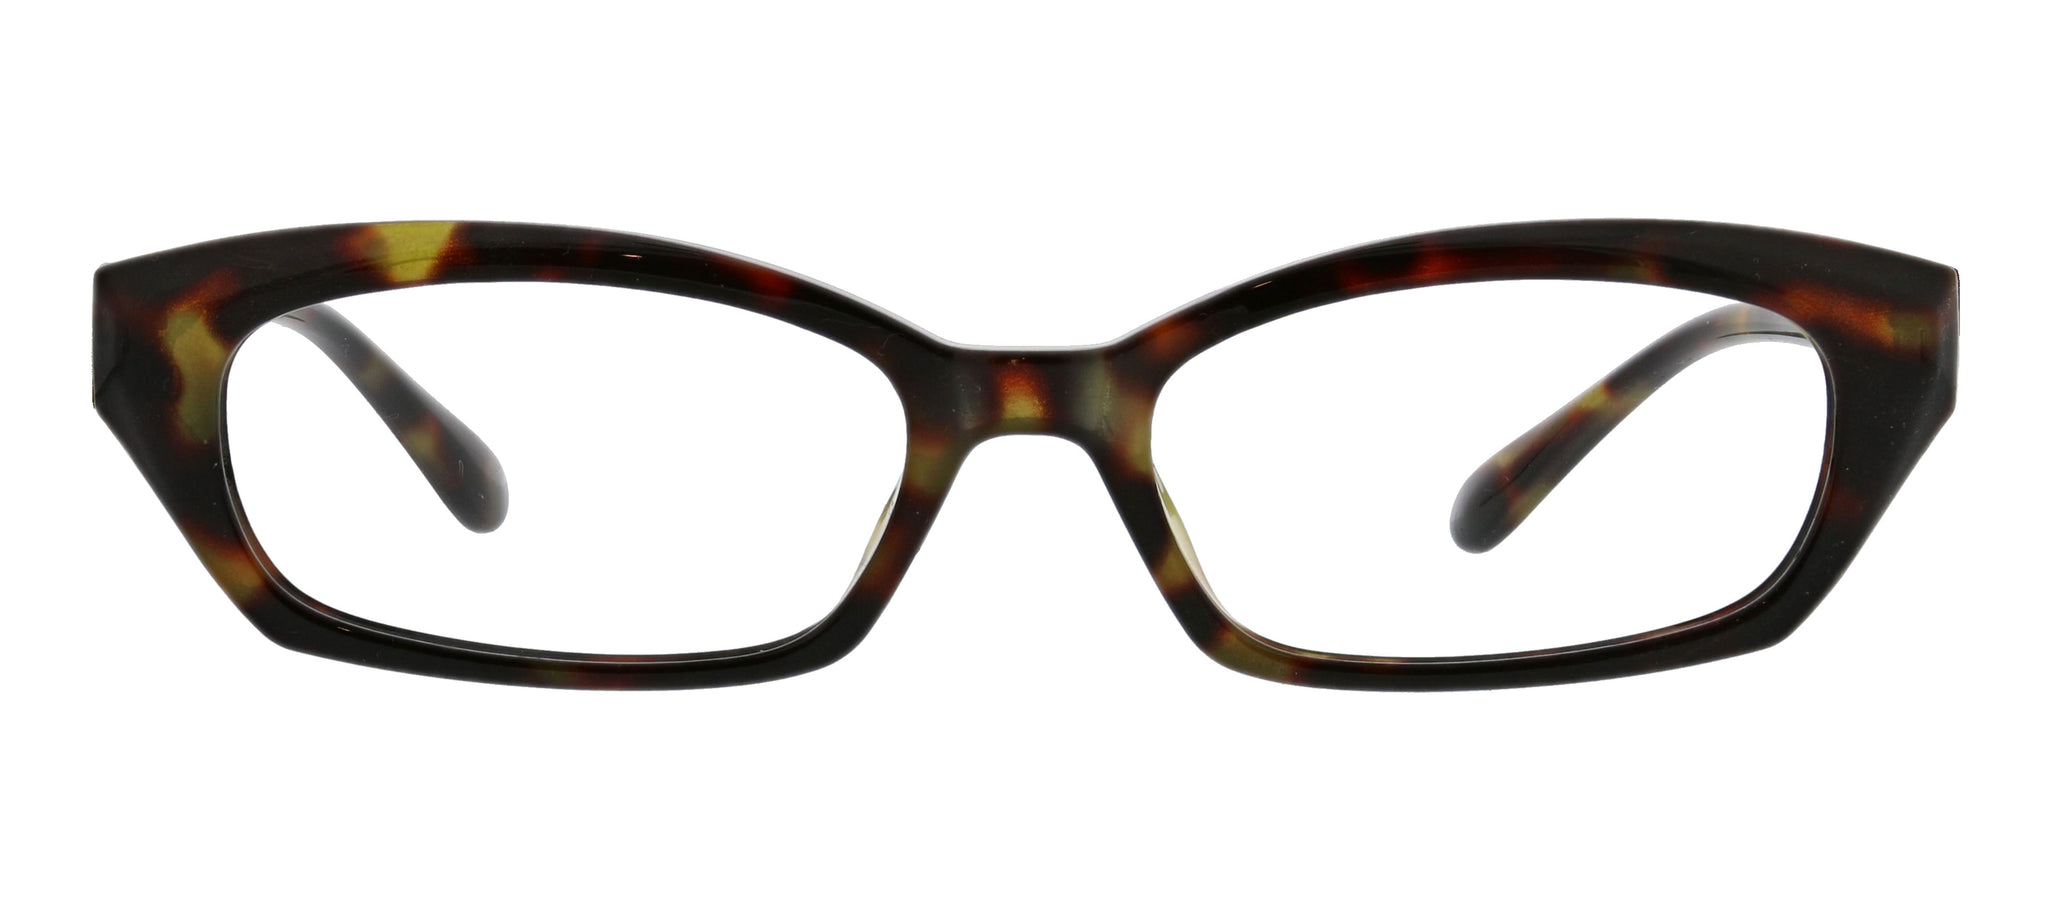 Viewpoint half-frame rectangular tortoise blue light reading glasses by Peepers